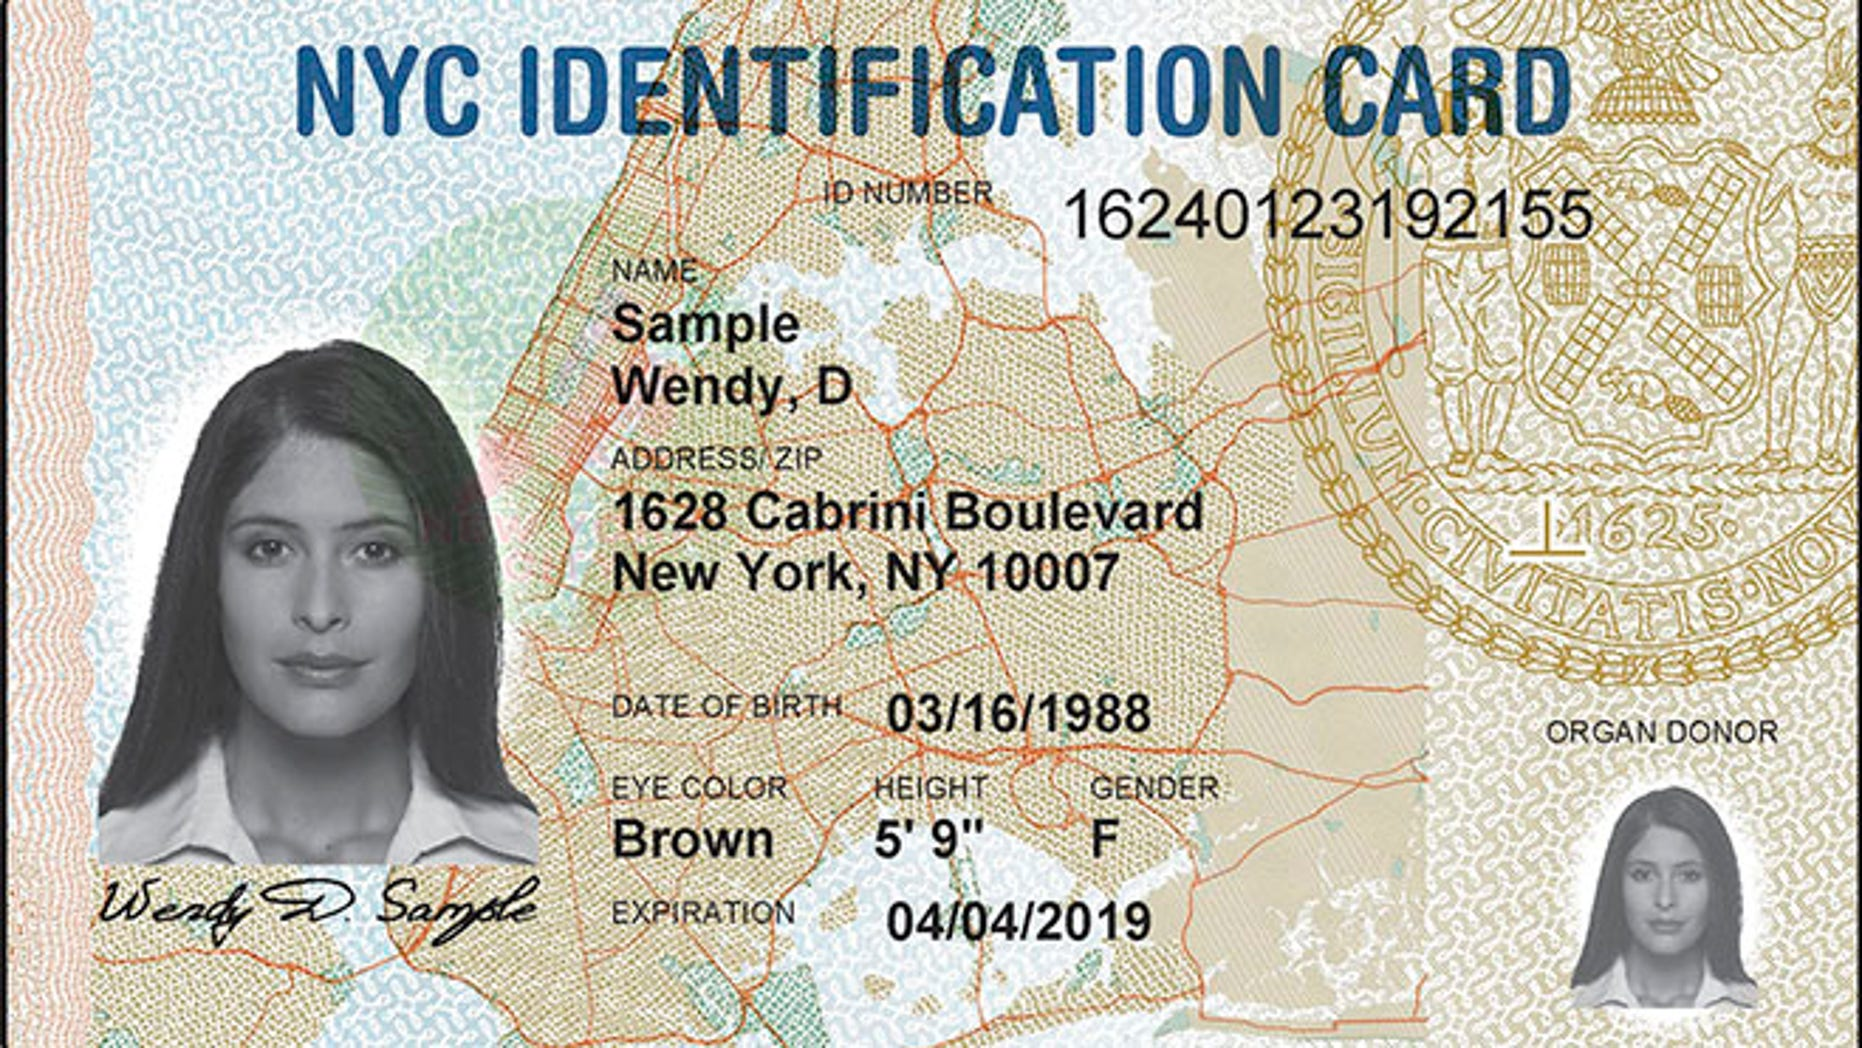 A sample ID card issued by New York City.